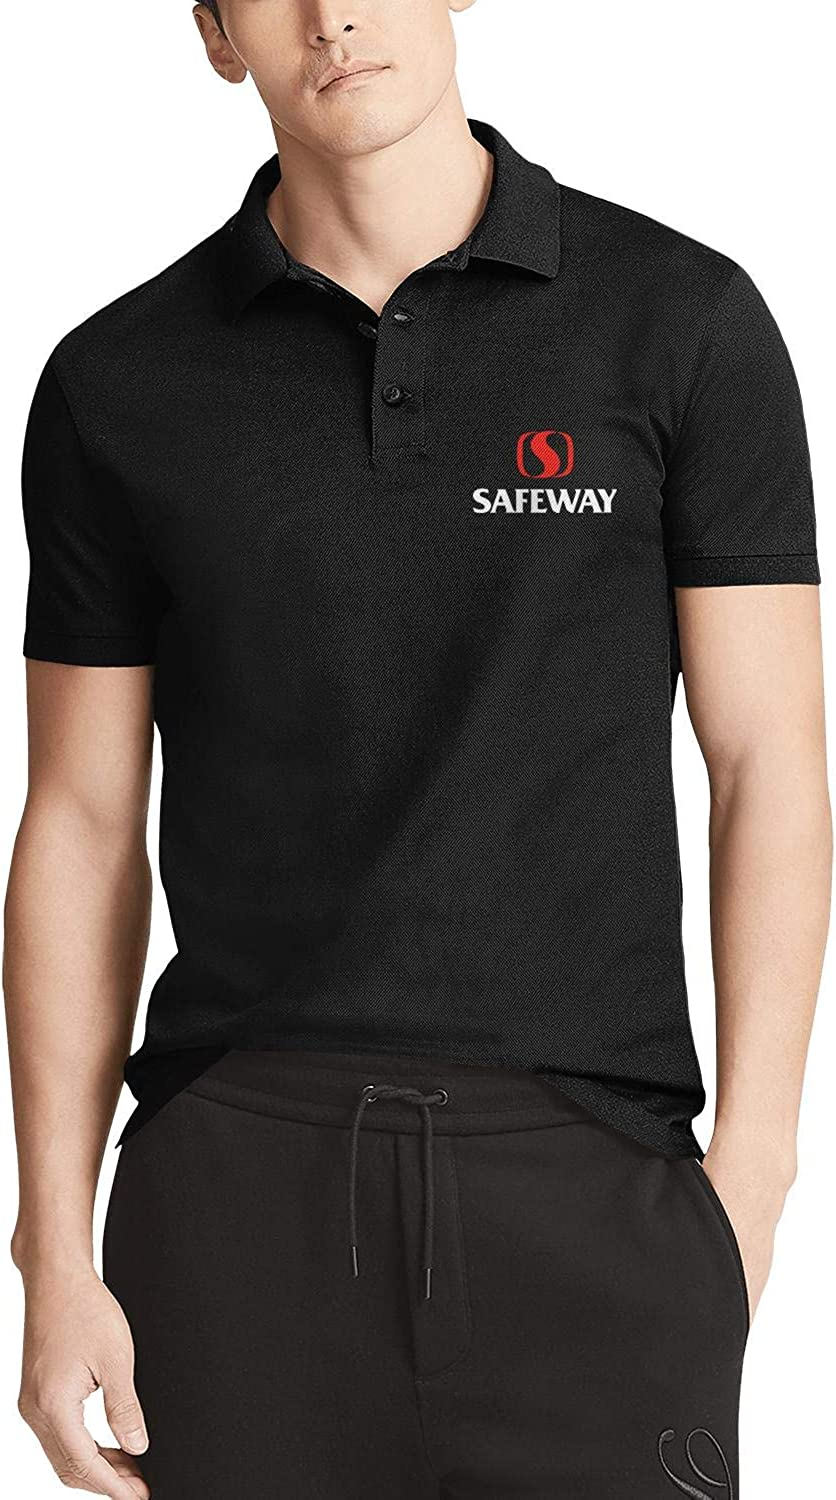 Men's Courier shipping free shipping Black Short Sleeves T-Shirts Safeway-Inc-Log Bombing new work Polo Collared